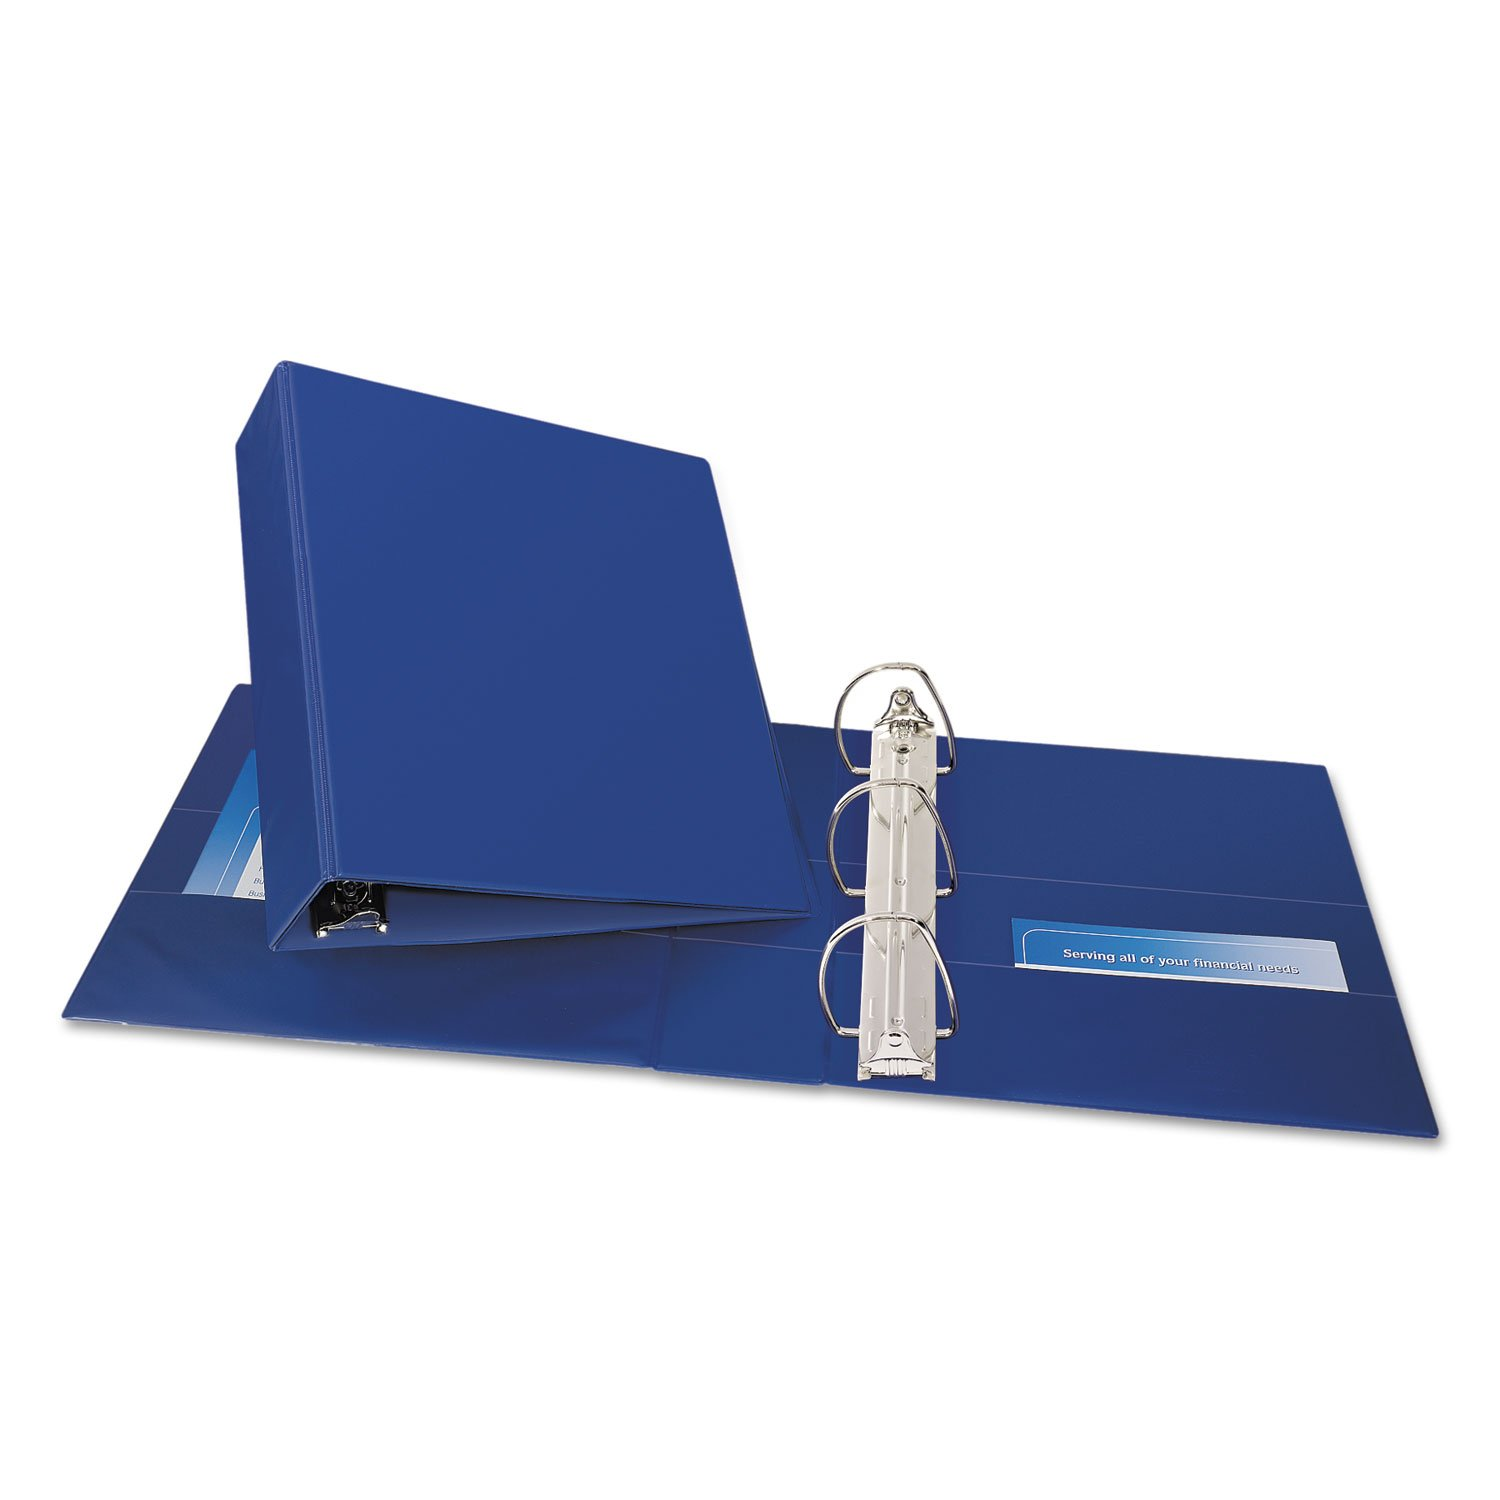 Avery Products - Avery - Durable Slant Ring Reference Binder, 3amp;quot; Capacity, Blue - Sold As 1 Each - Gap FreeTM feature prevents ring misalignment so pages turn smoothly. - Back-mounted slant rings hold up to 25% more sheets than same size round rin